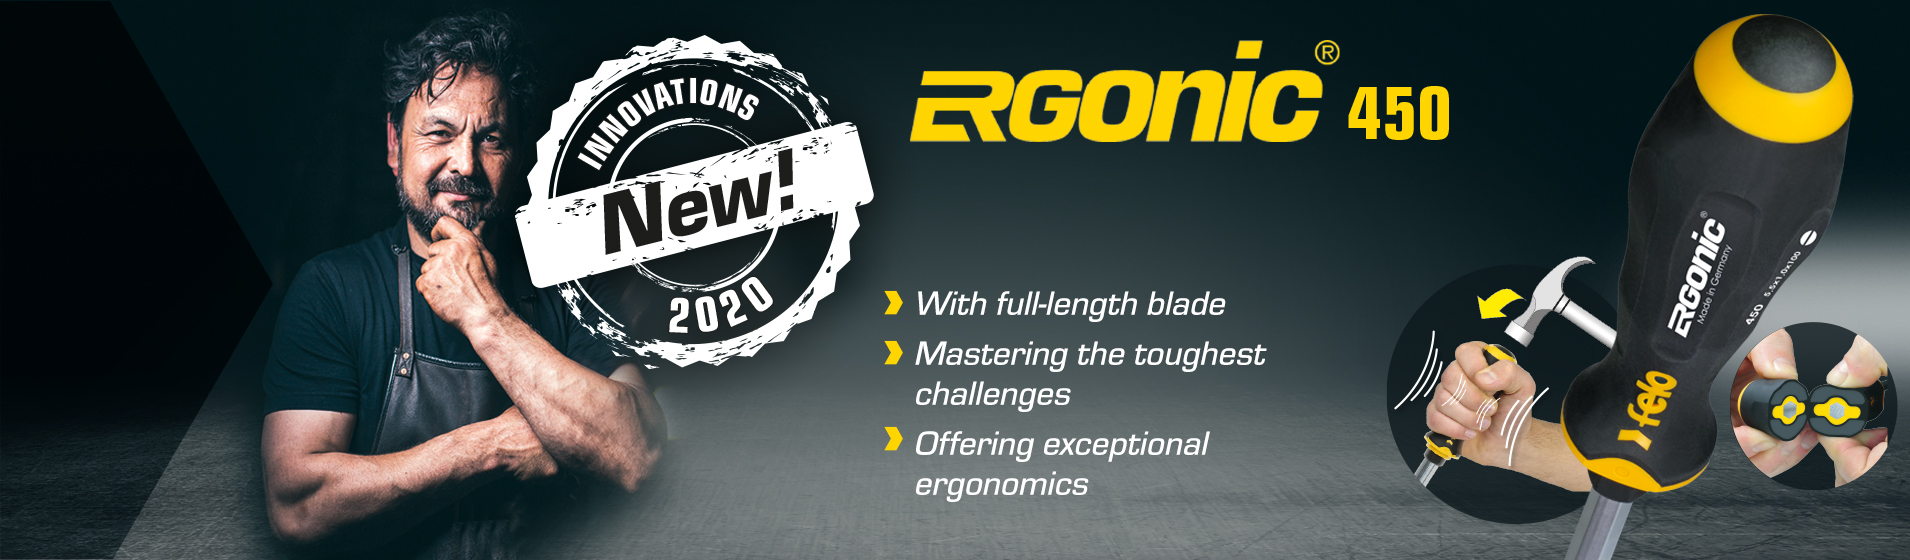 ERGONIC series 450 – The new ERGONIC with hammer head